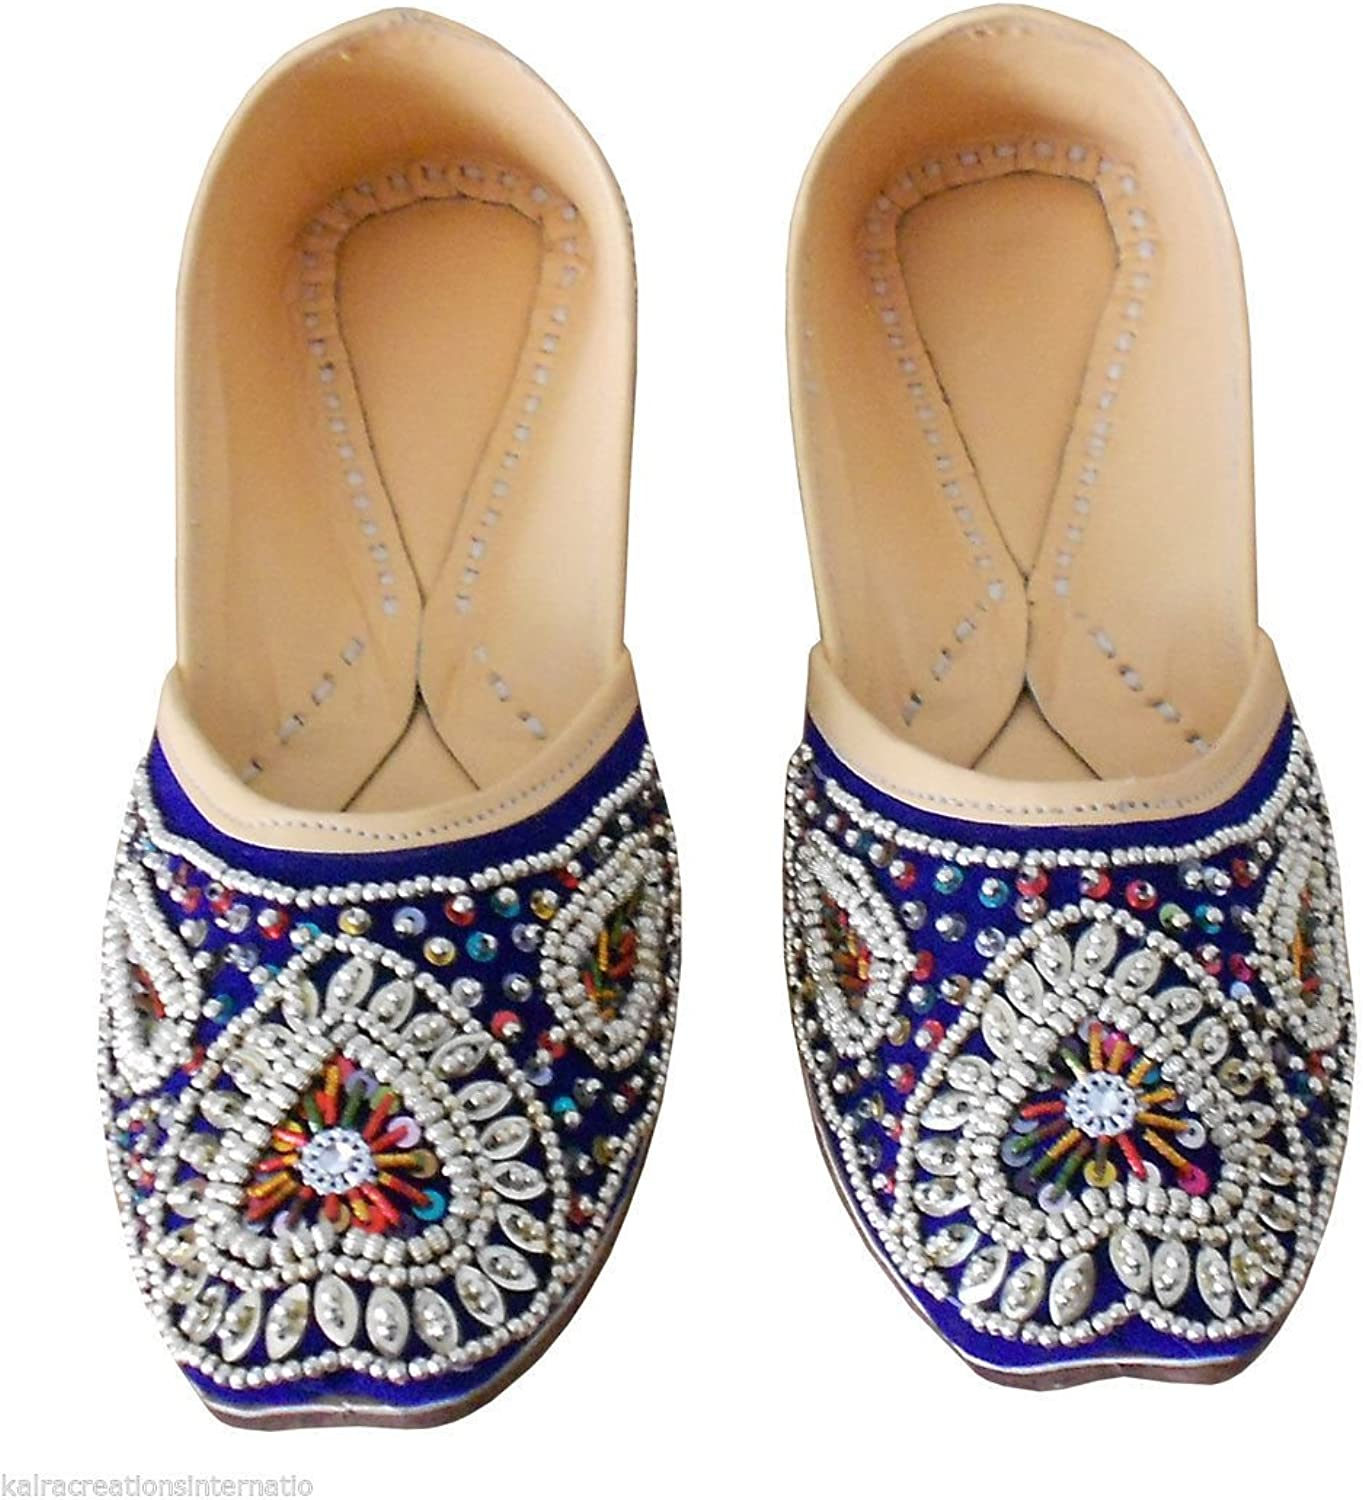 Kalra Creations Women's Traditional Indian Jutti Velvet with Sequence Work Ethnic shoes